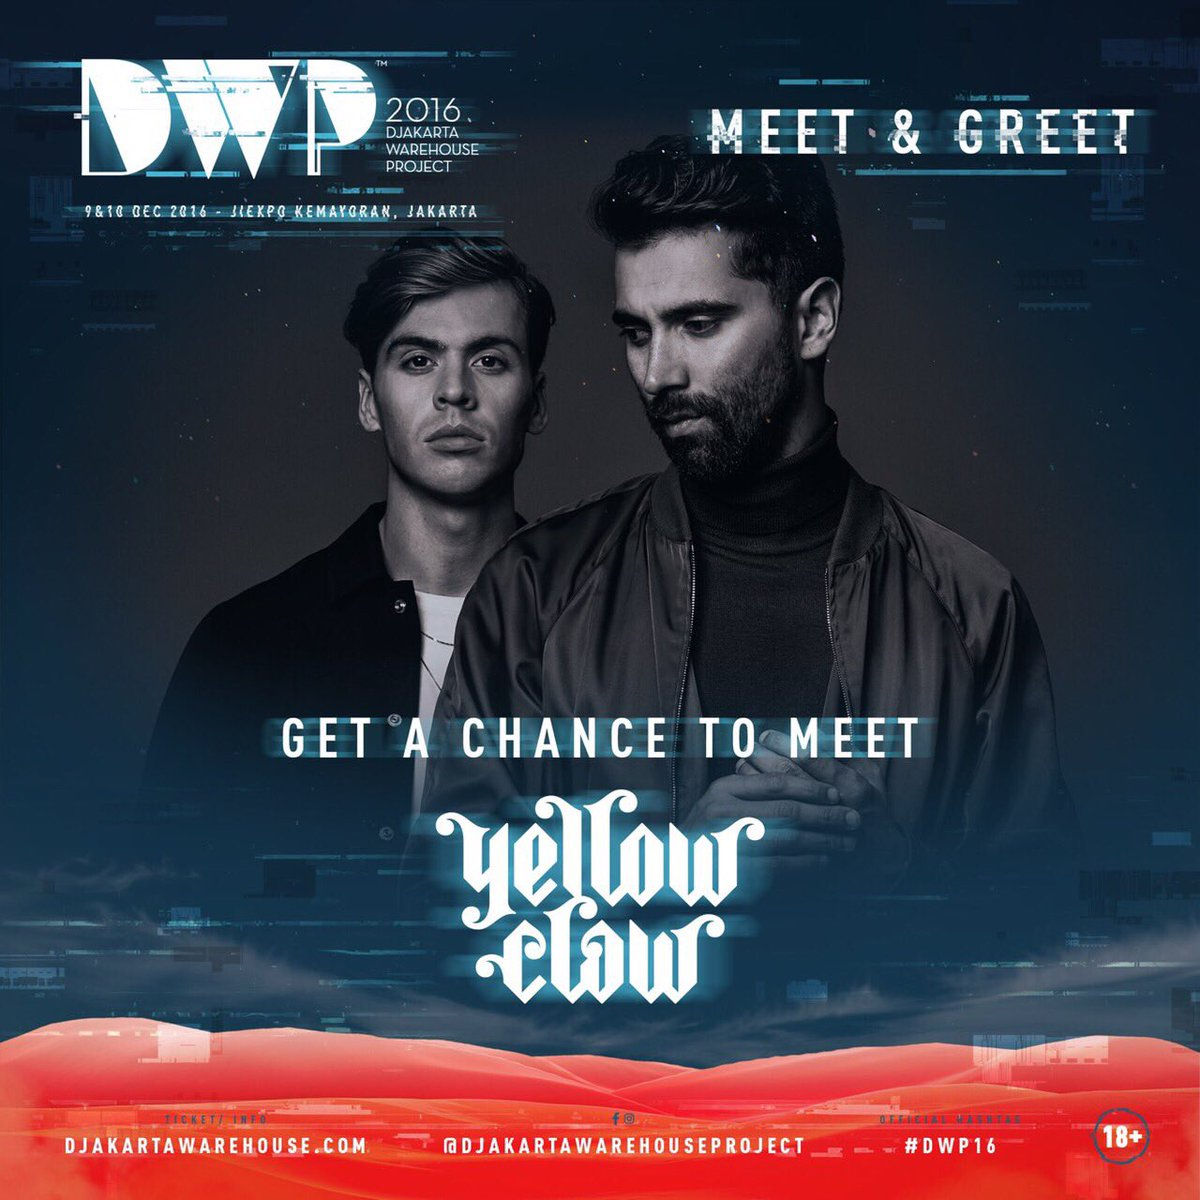 Djakarta Warehouse Project On Twitter Want To Get The Chance To